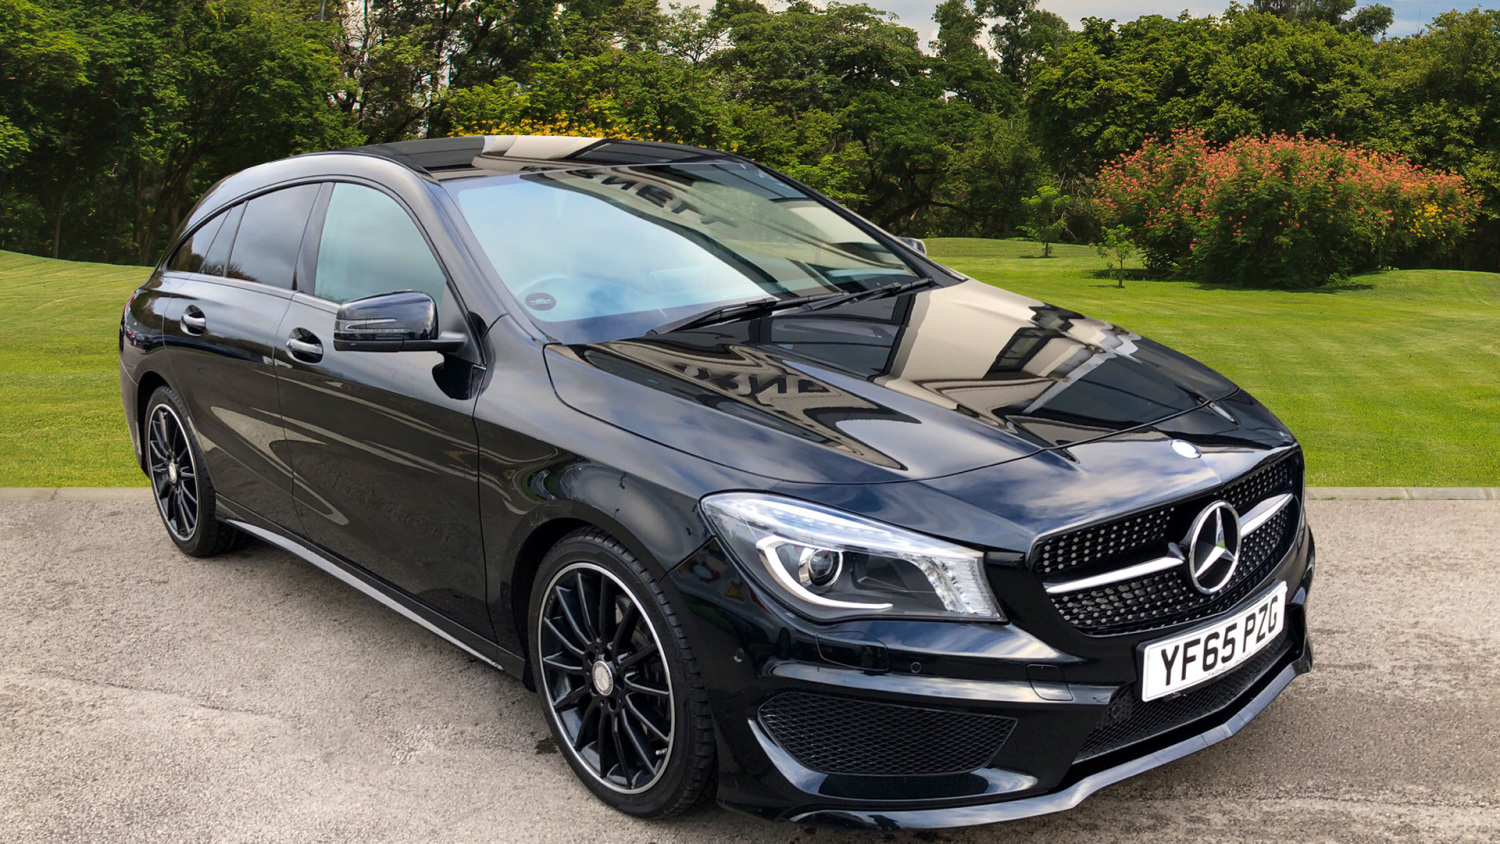 Used Mercedes-Benz CLA Cla 220D Amg Sport 5Dr Tip Auto